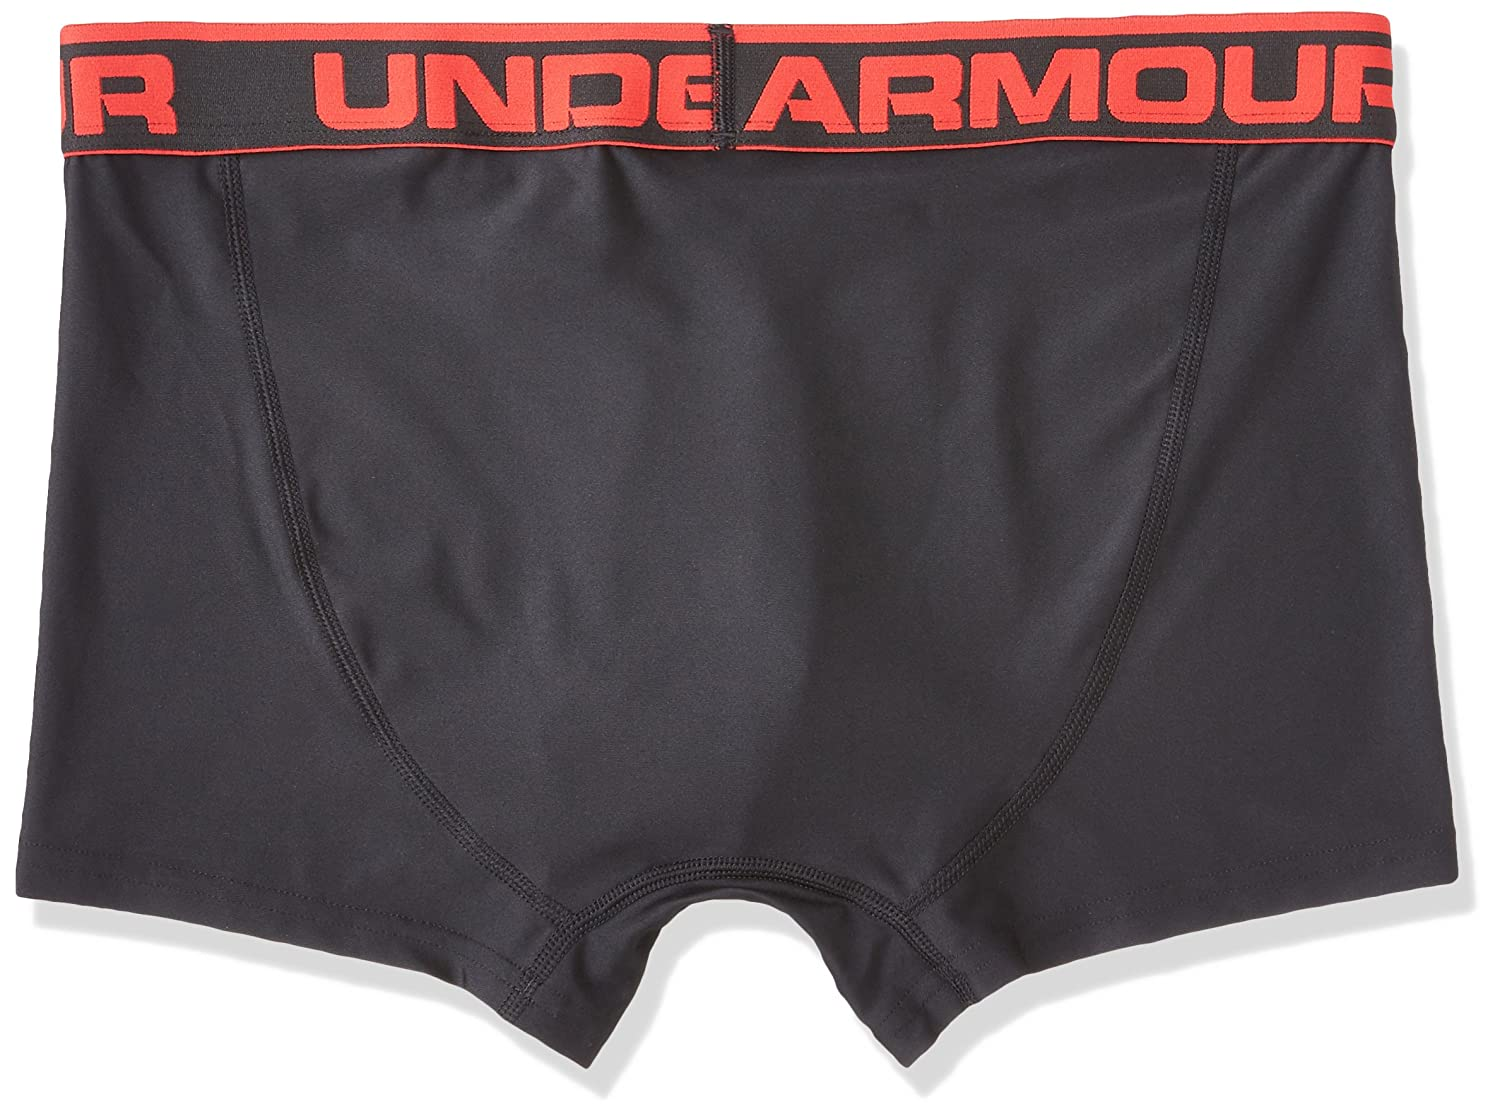 Under Armour The Original 3 Boxerjock Boxers, Hombre: Amazon.es: Deportes y aire libre